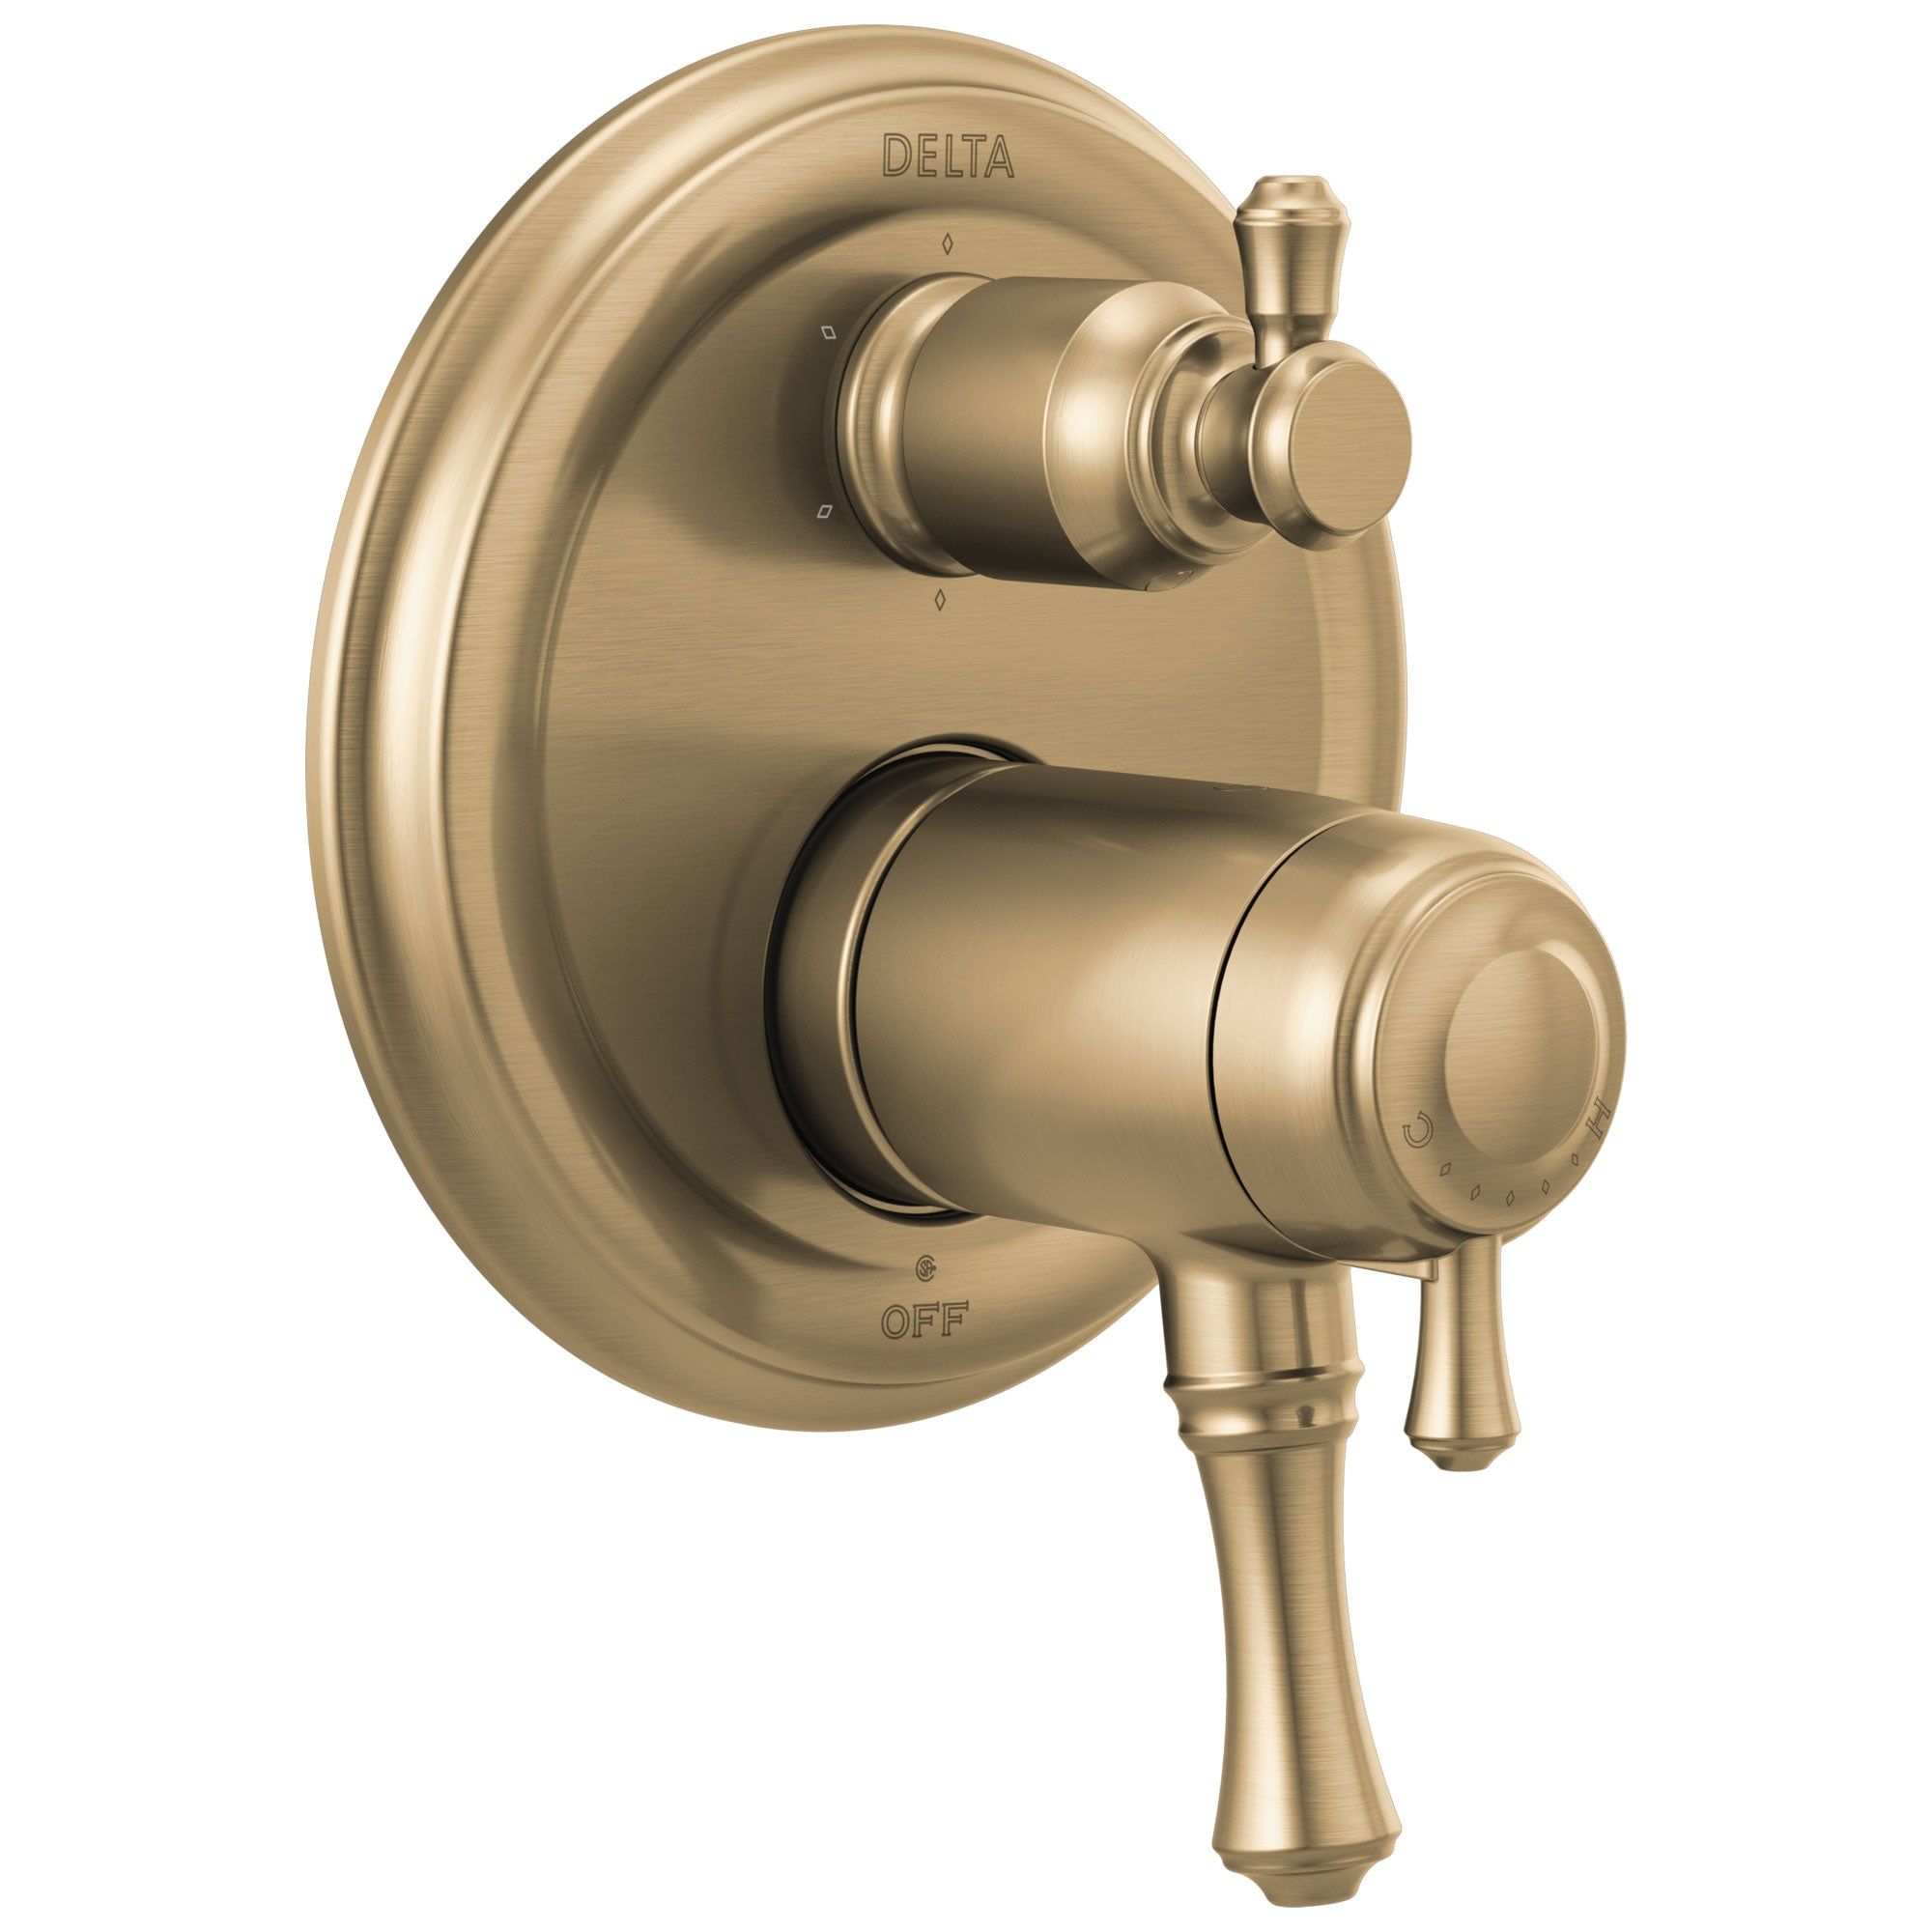 Delta Cassidy Champagne Bronze Finish Traditional TempAssure 17T Series Shower Control Trim Kit with 6-Setting Integrated Diverter (Requires Valve) DT27T997CZ